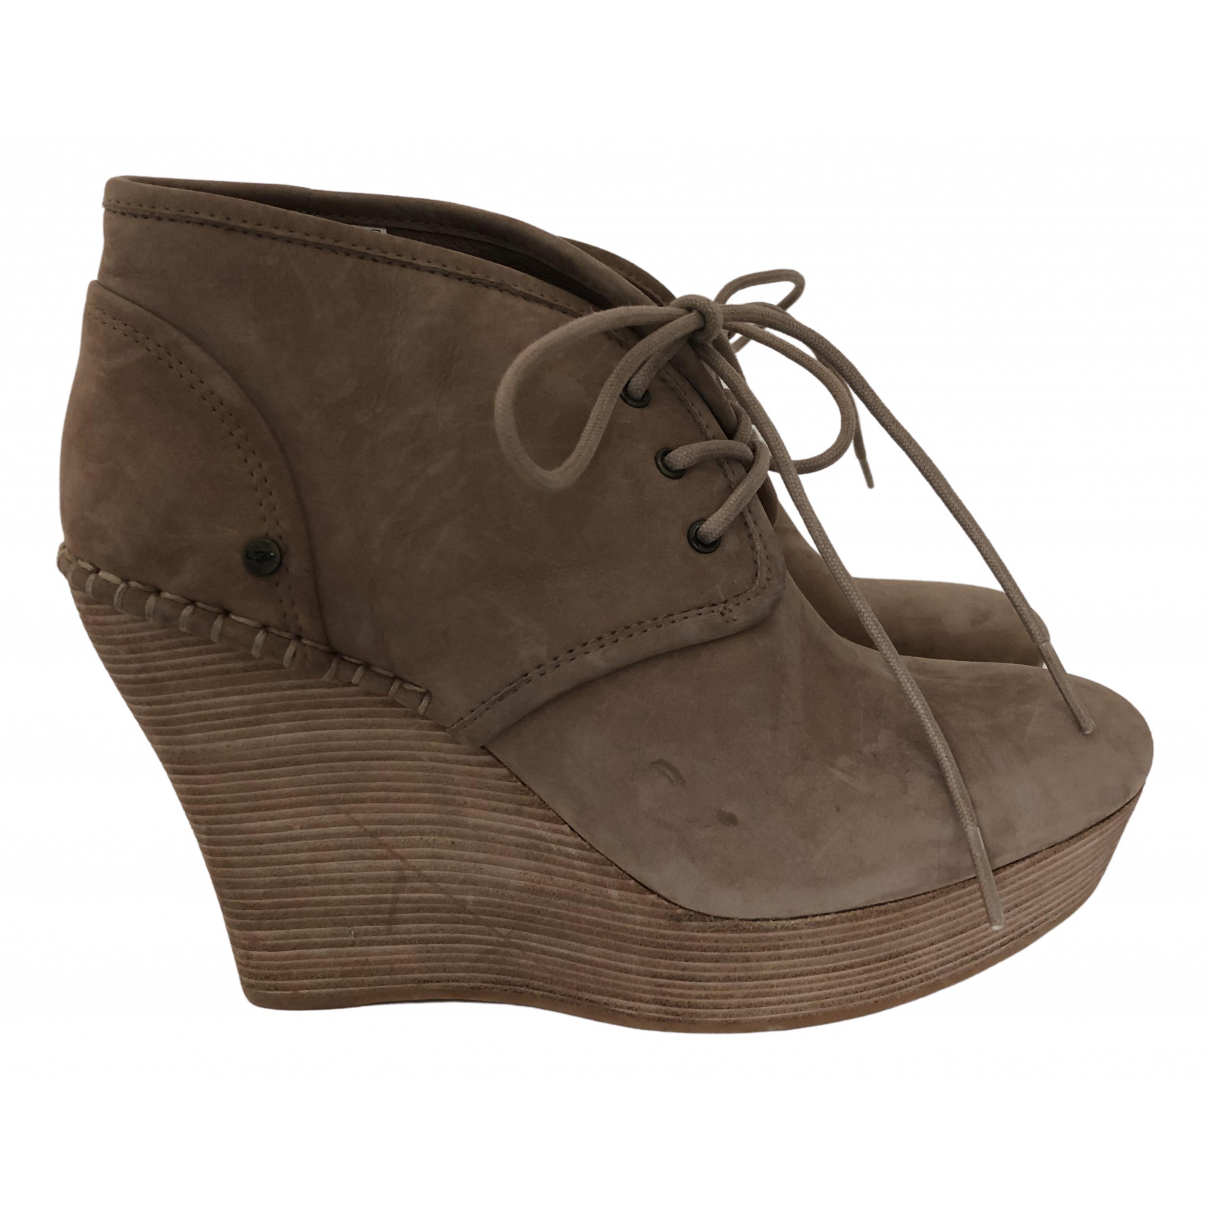 Ugg \N Camel Cloth Boots for Women 36 EU